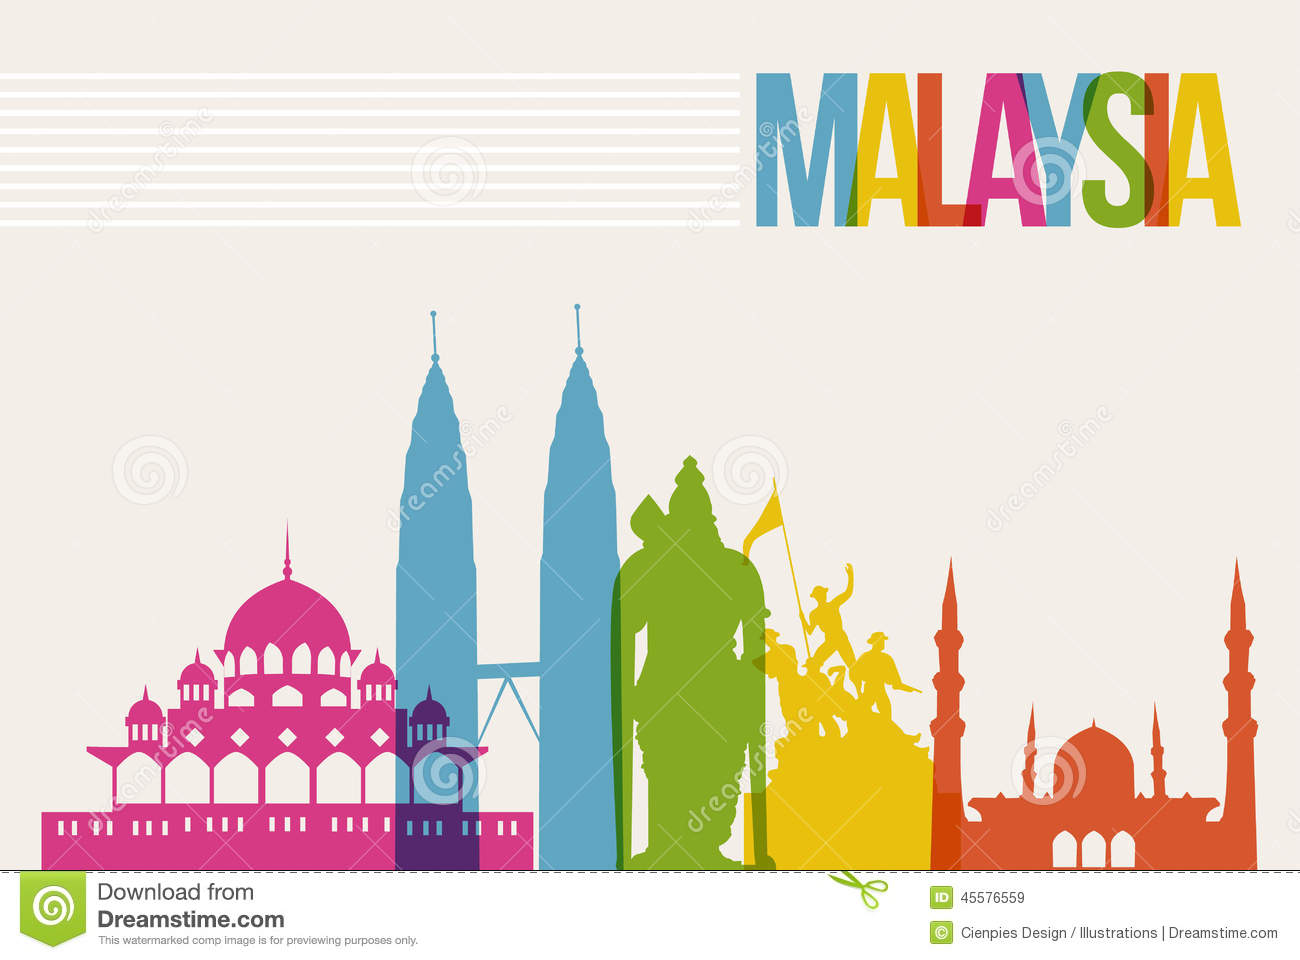 Malaysia clipart #14, Download drawings